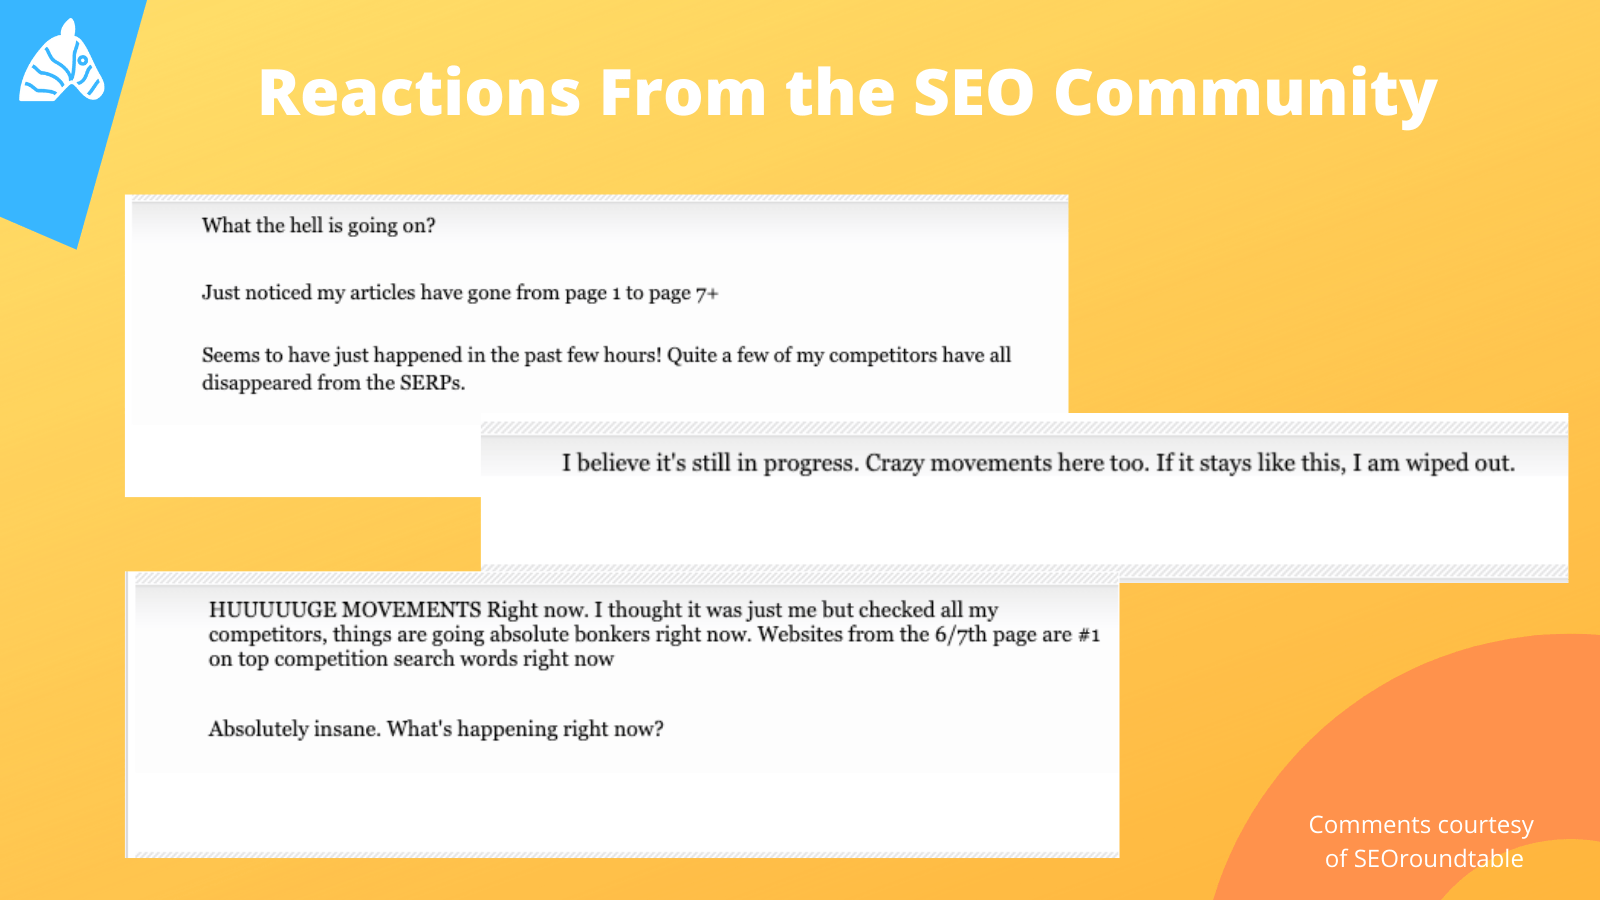 August 10th Google Update - reactions from the SEO community